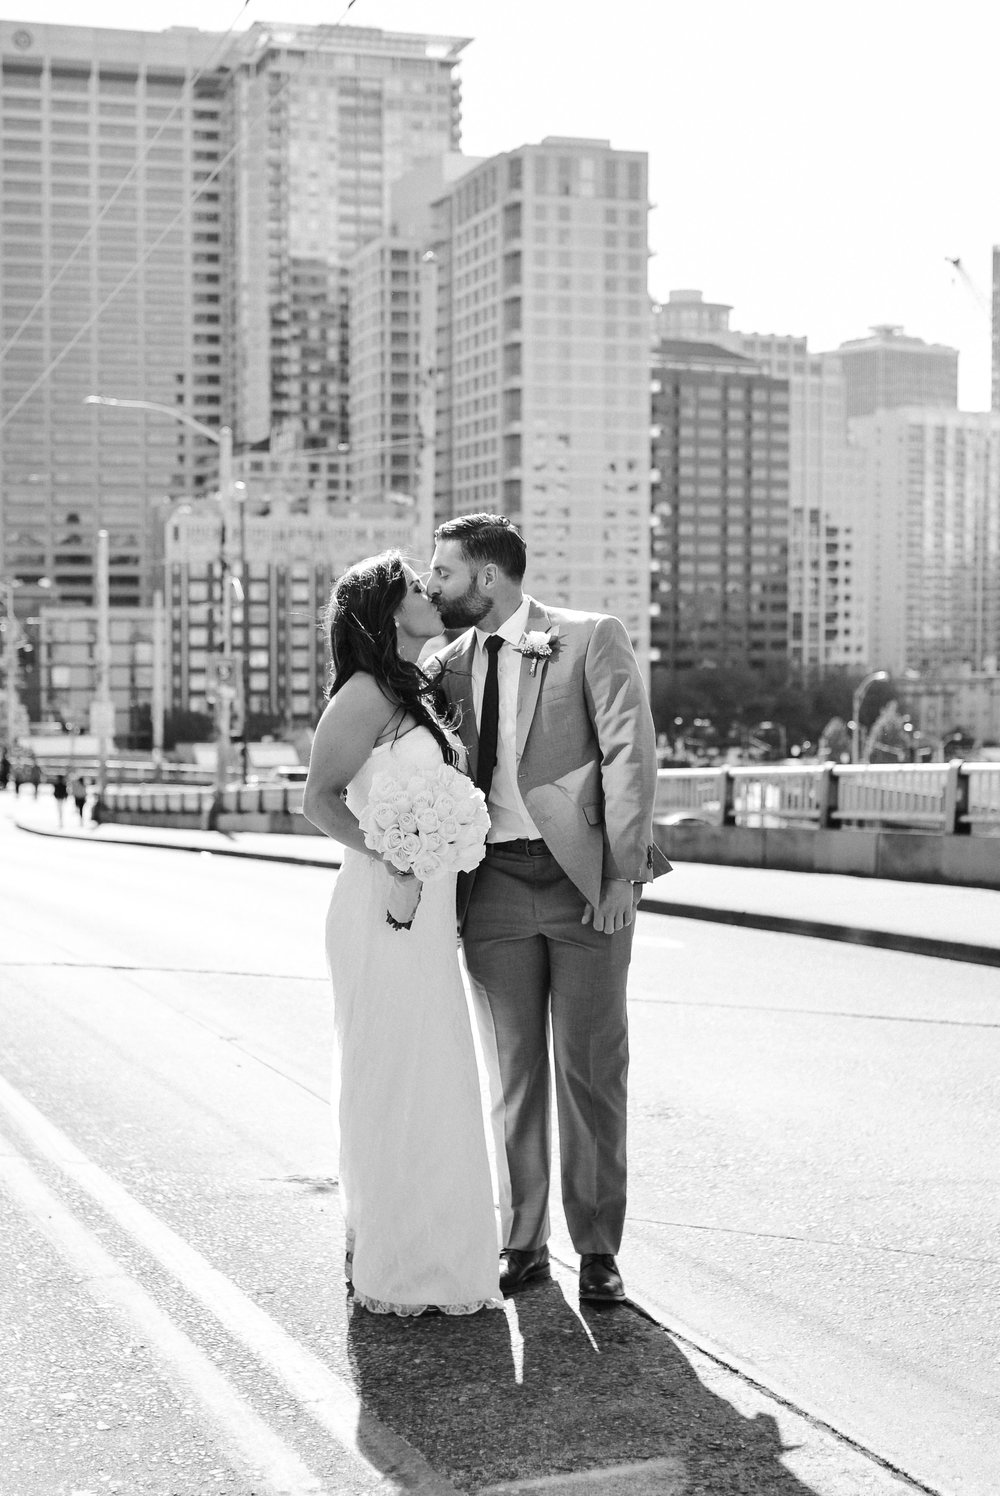 Justin+Clark+Seattle+Photographer-1210.jpg